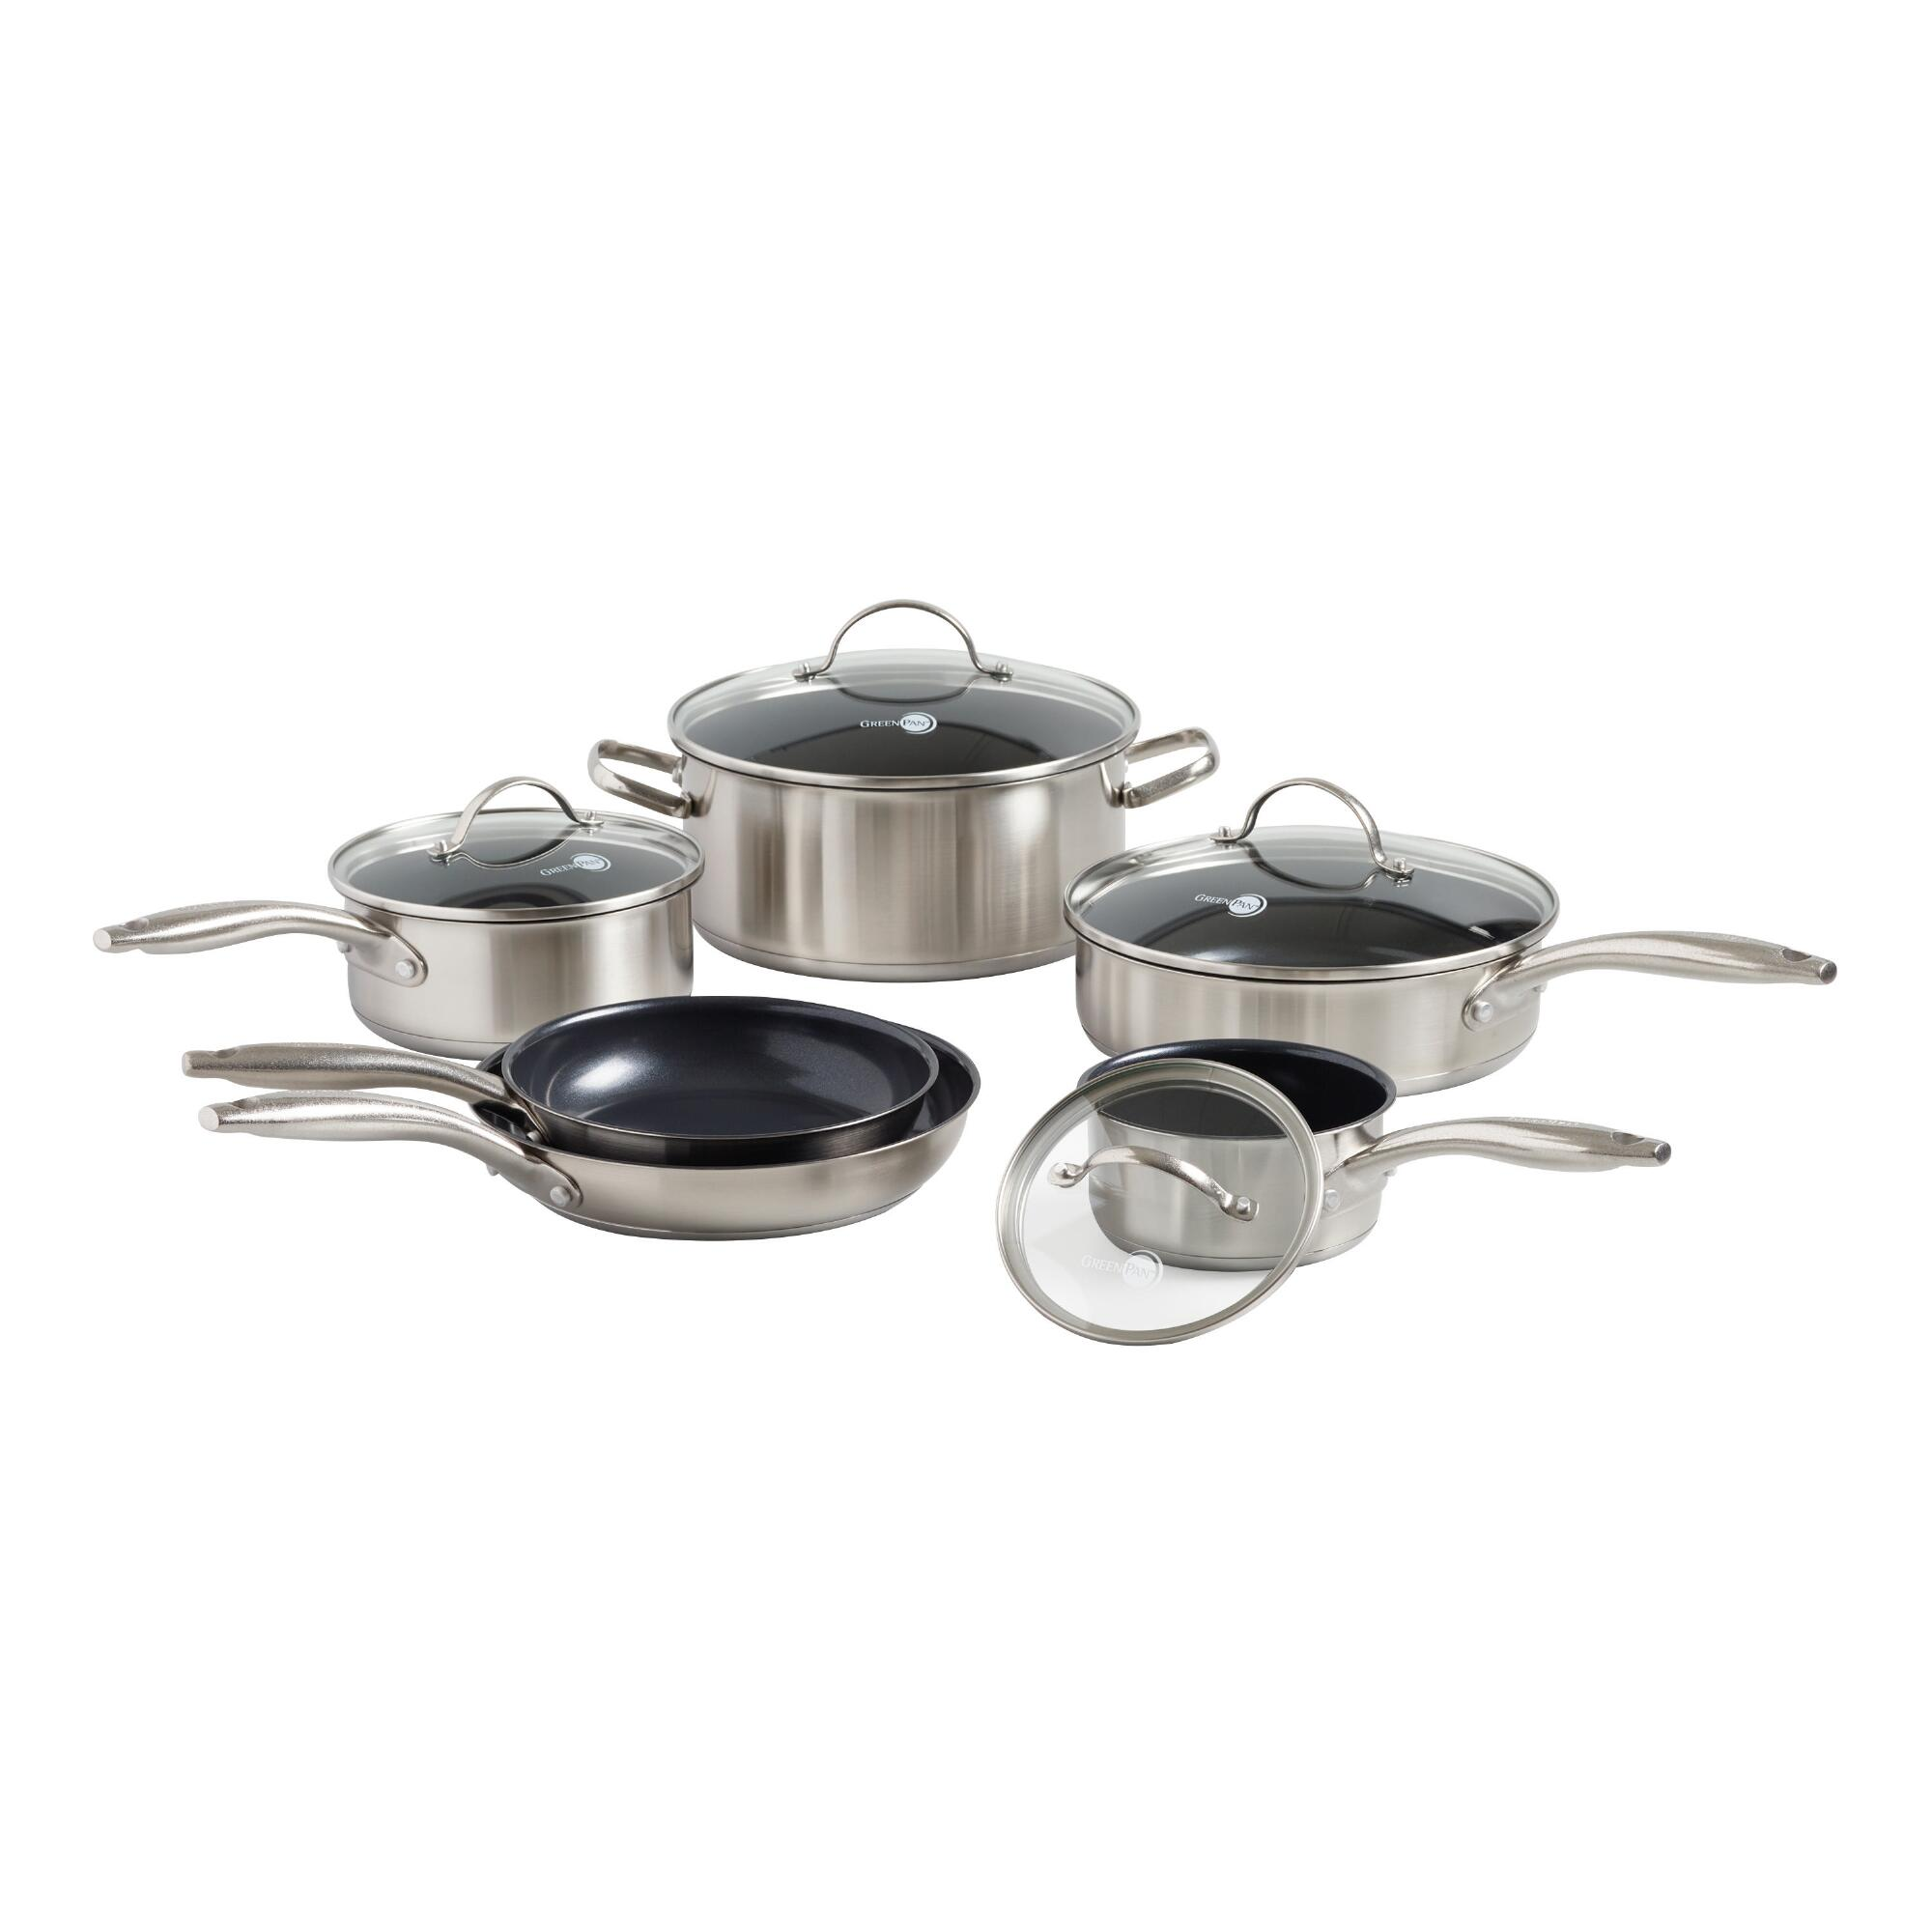 GreenPan Marina 10 Piece Nonstick Ceramic Cookware Set by World Market